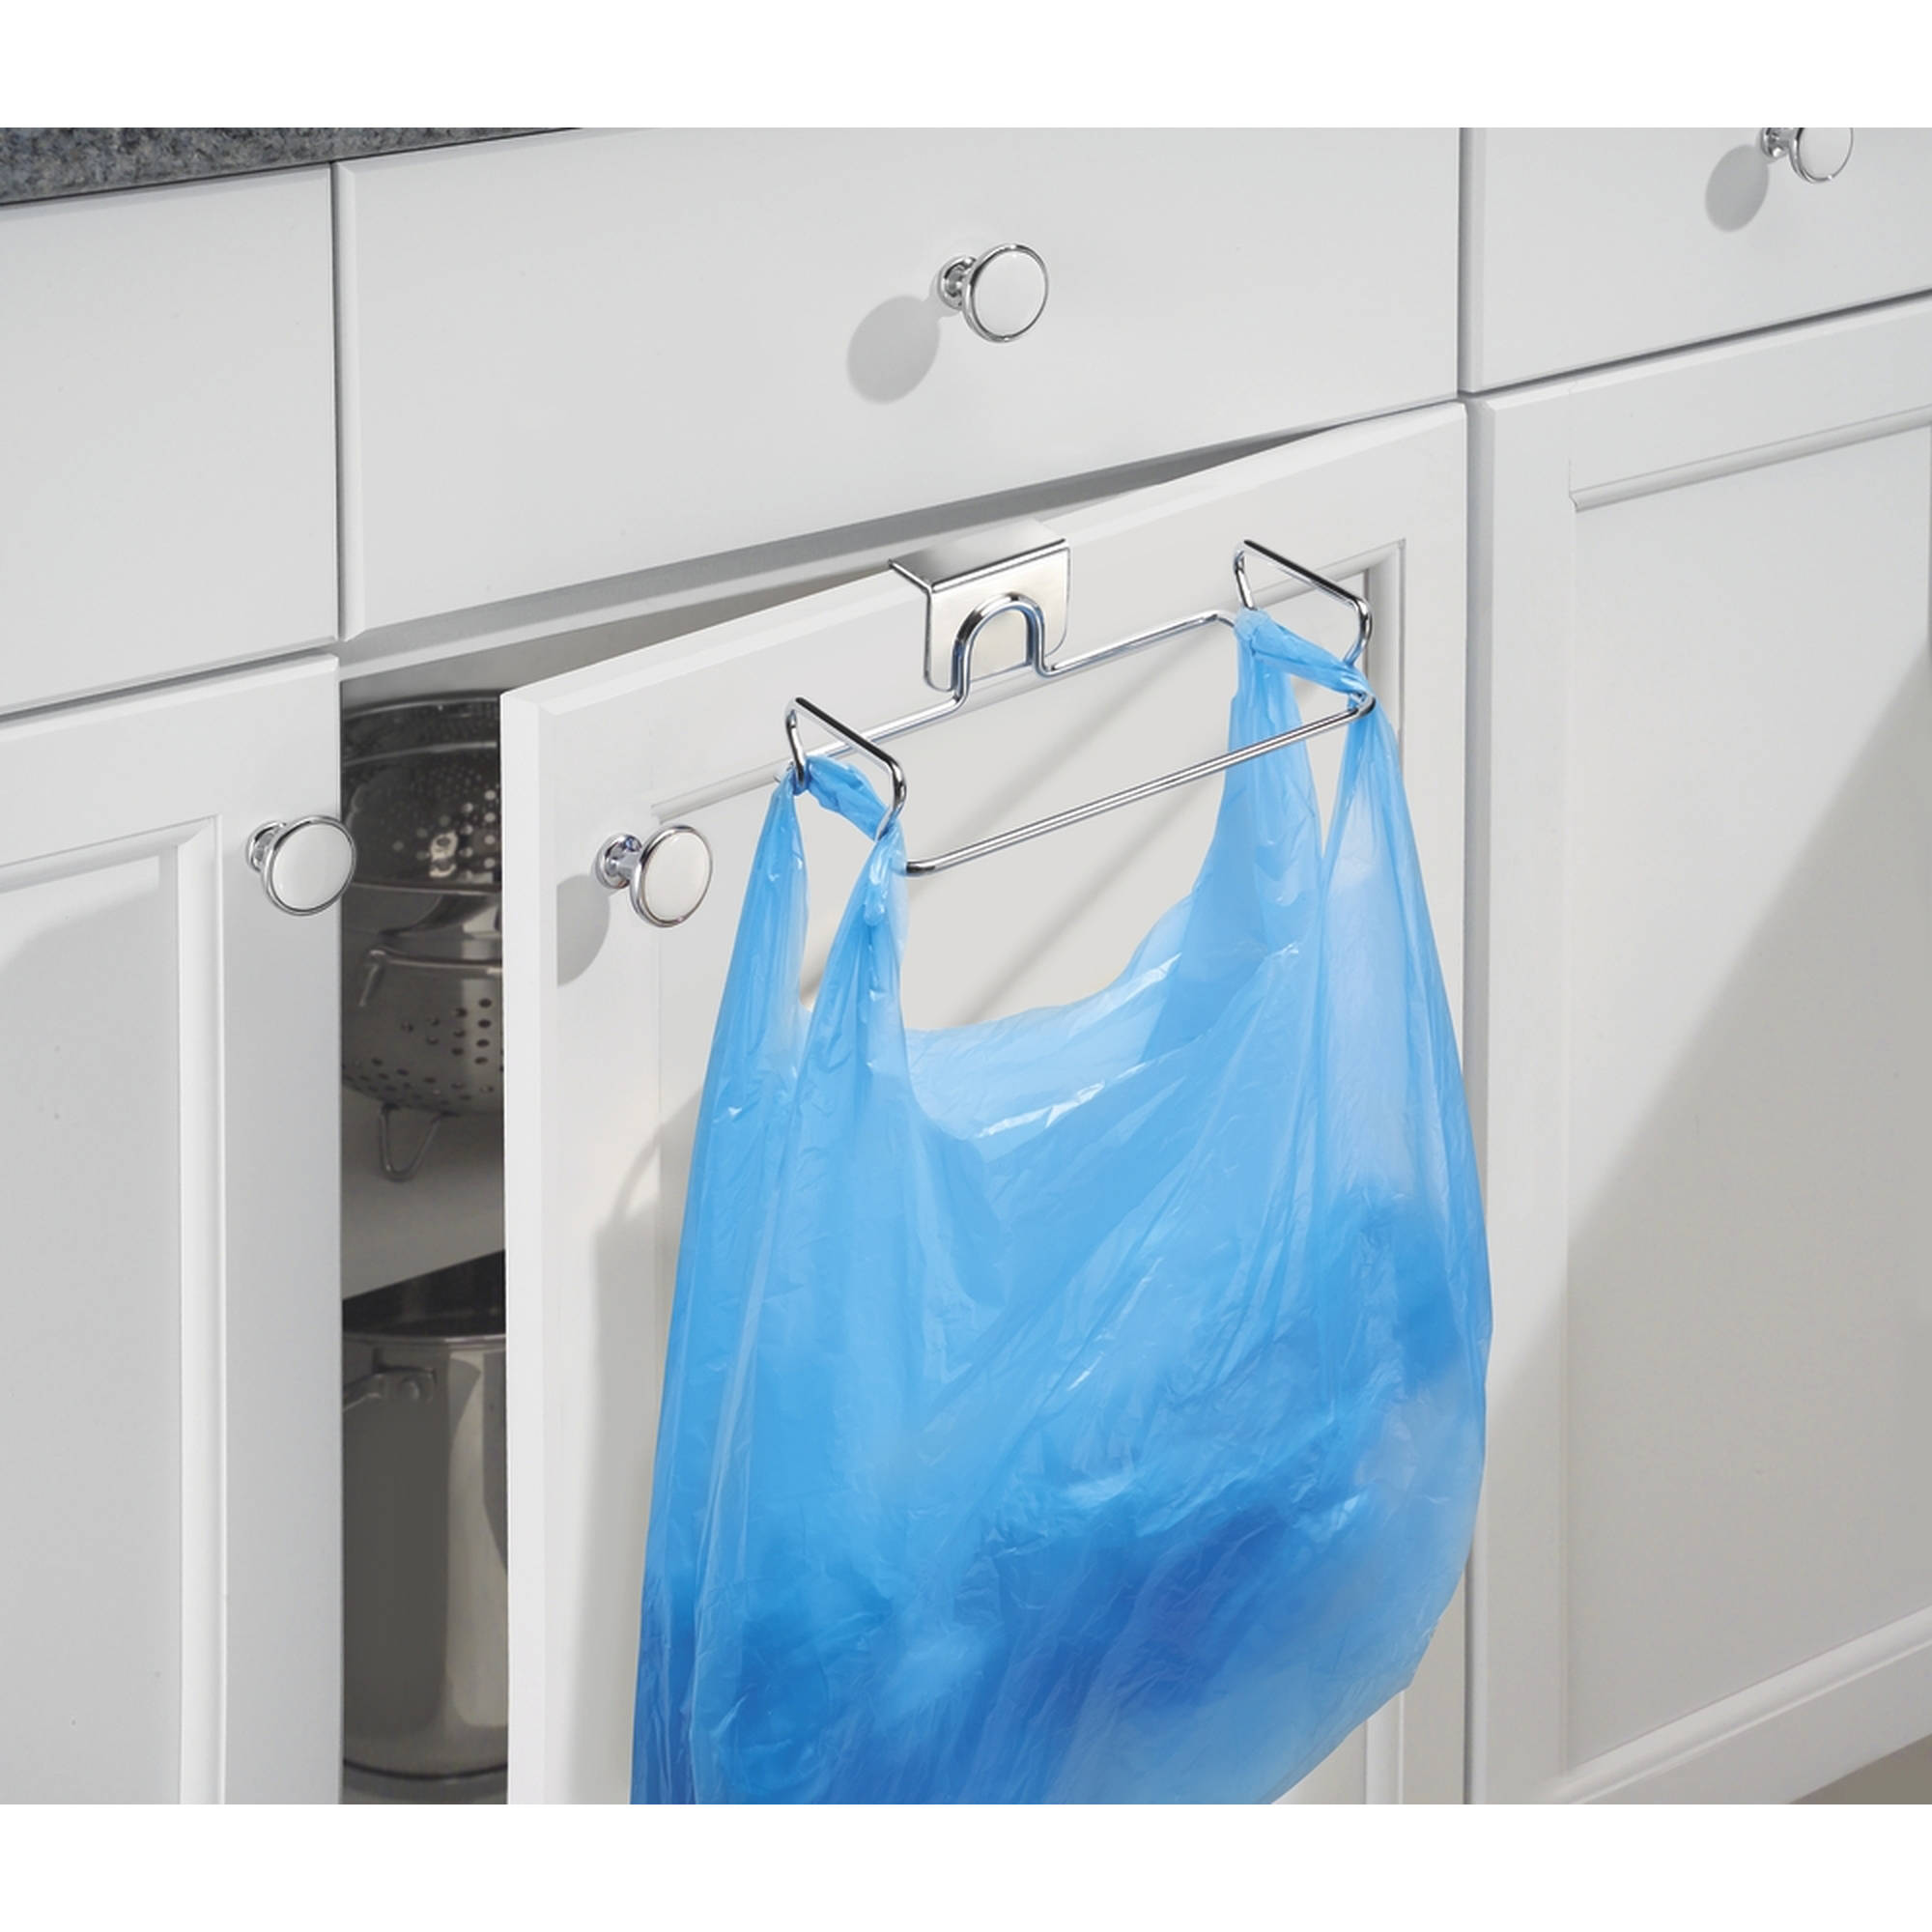 InterDesign Classico Over the Cabinet Plastic Bag Holder for Kitchen, Chrome